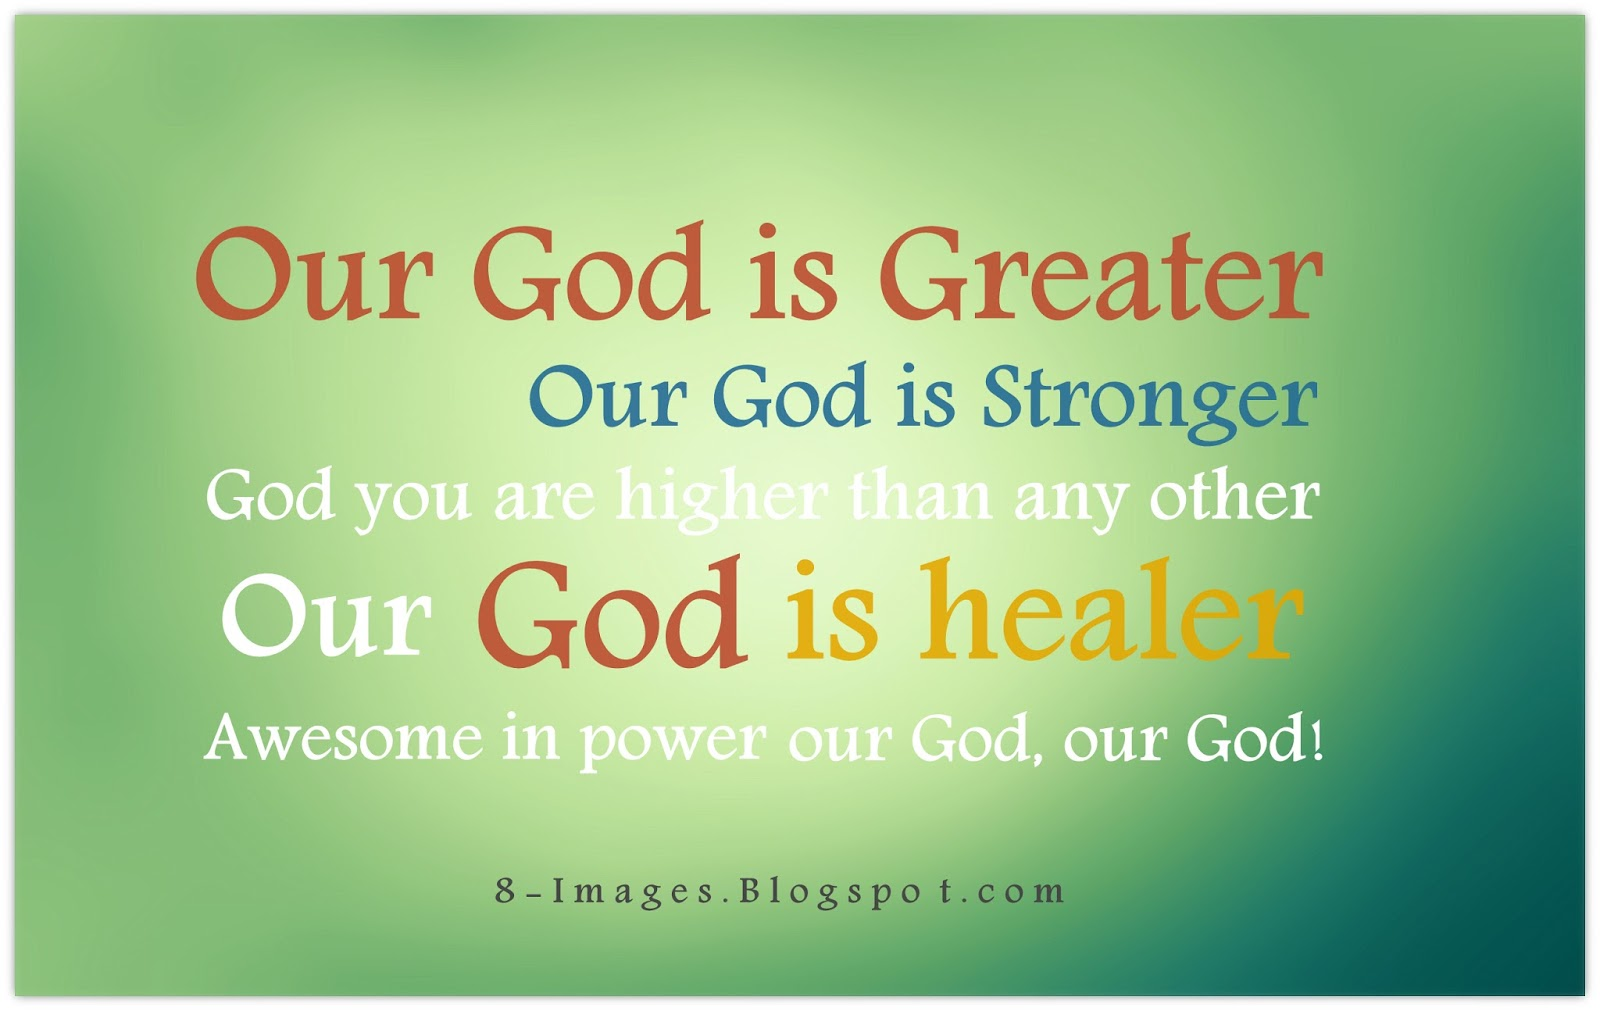 Our God Is Greater Our God Is Stronger God You Are Higher Than Any